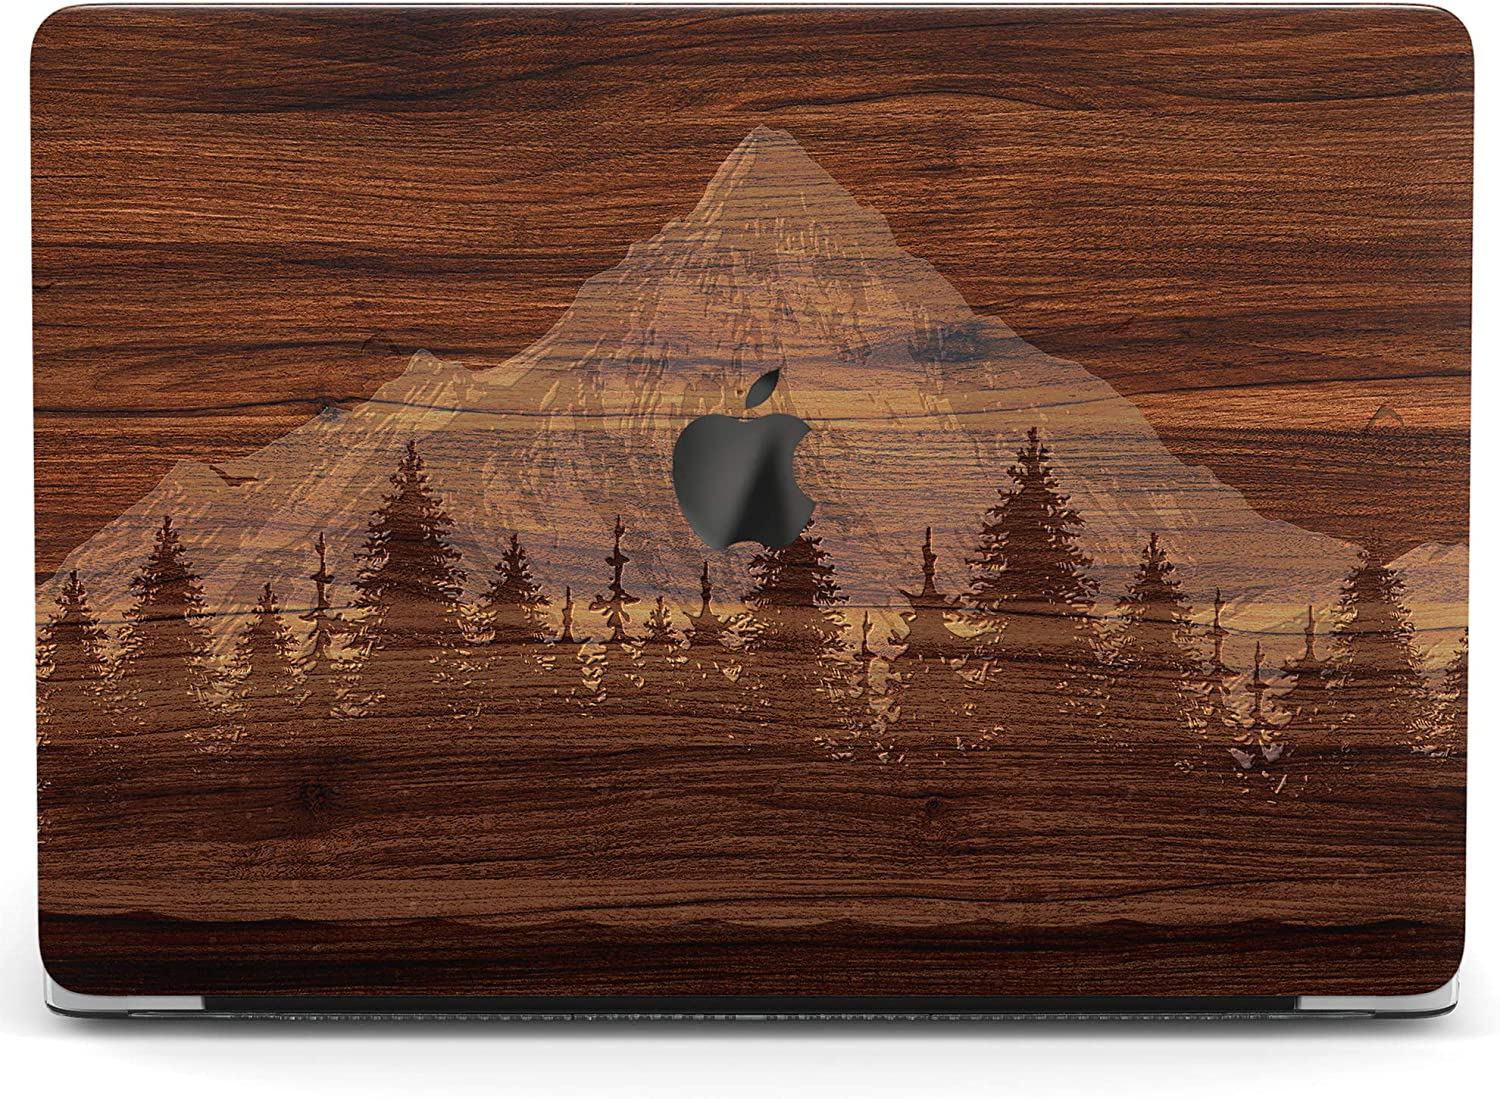 Wonder Wild Case for MacBook Air 13 inch Pro 15 2019 2018 Retina 12 11 Apple Hard Mac Protective Cover Touch Bar 2017 2016 2020 Plastic Laptop Print Wooden Mountain Grain Forest Barn Nature Texture